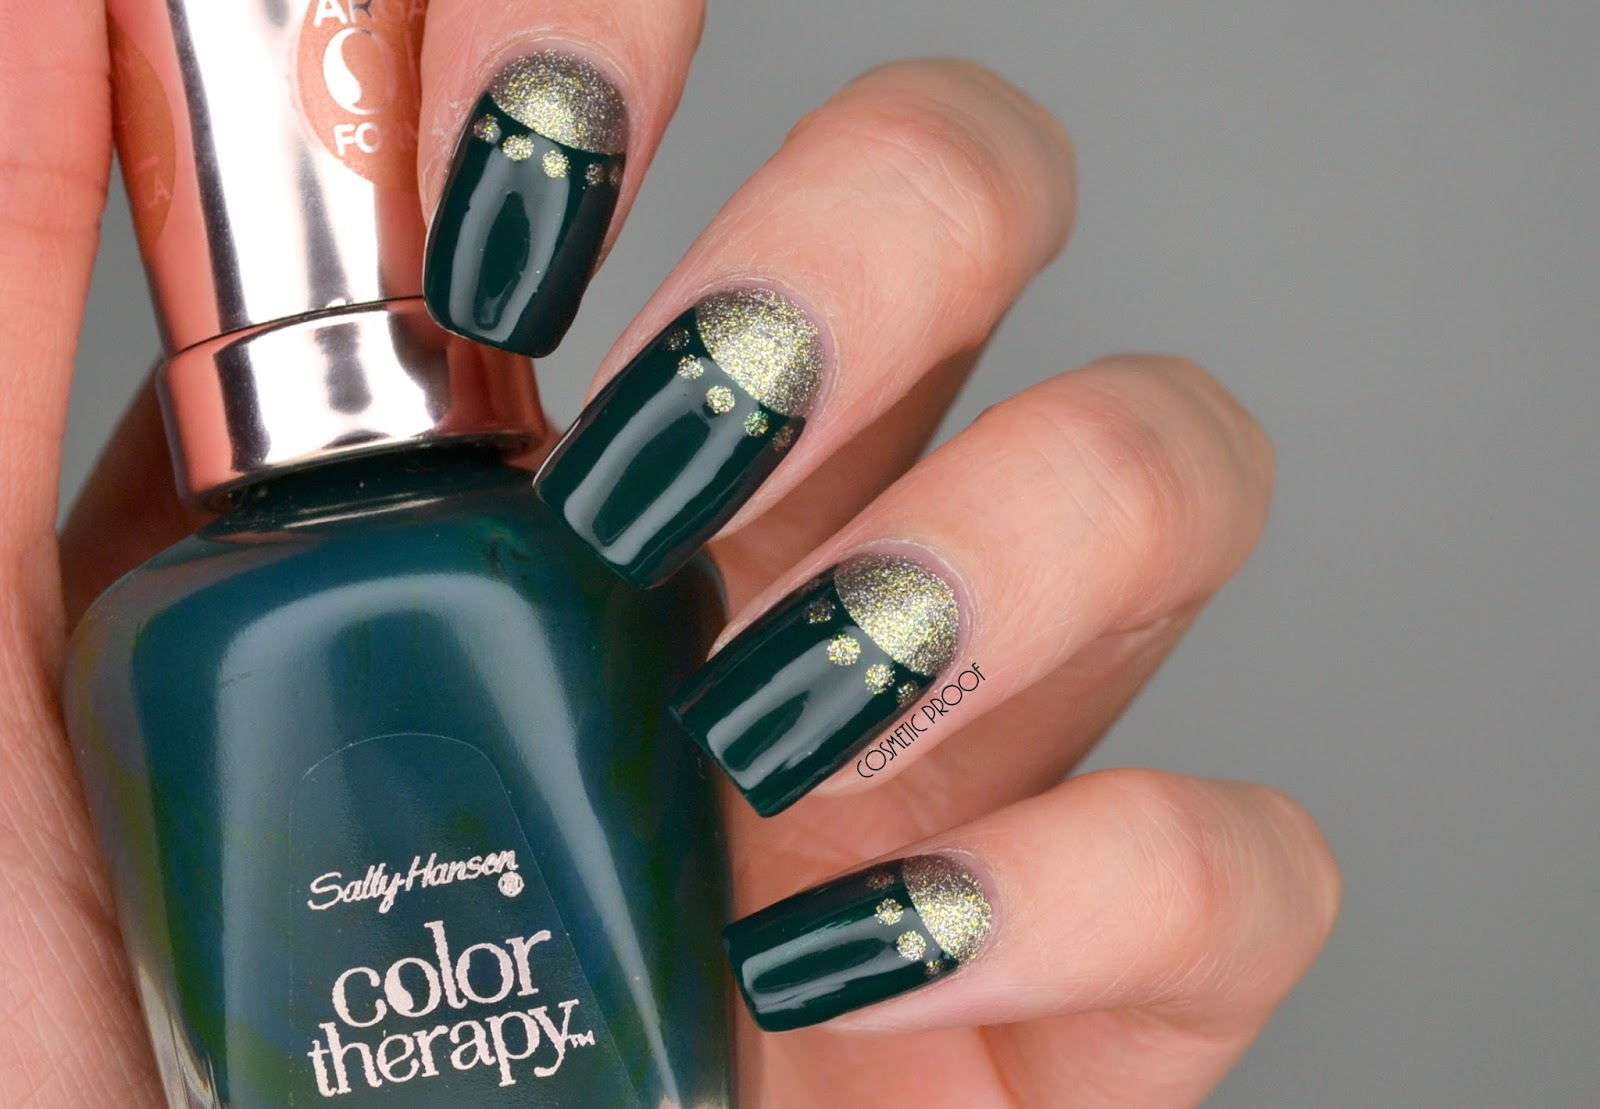 Nails Sally Hansen Color Therapy Green And Gold Half Moons